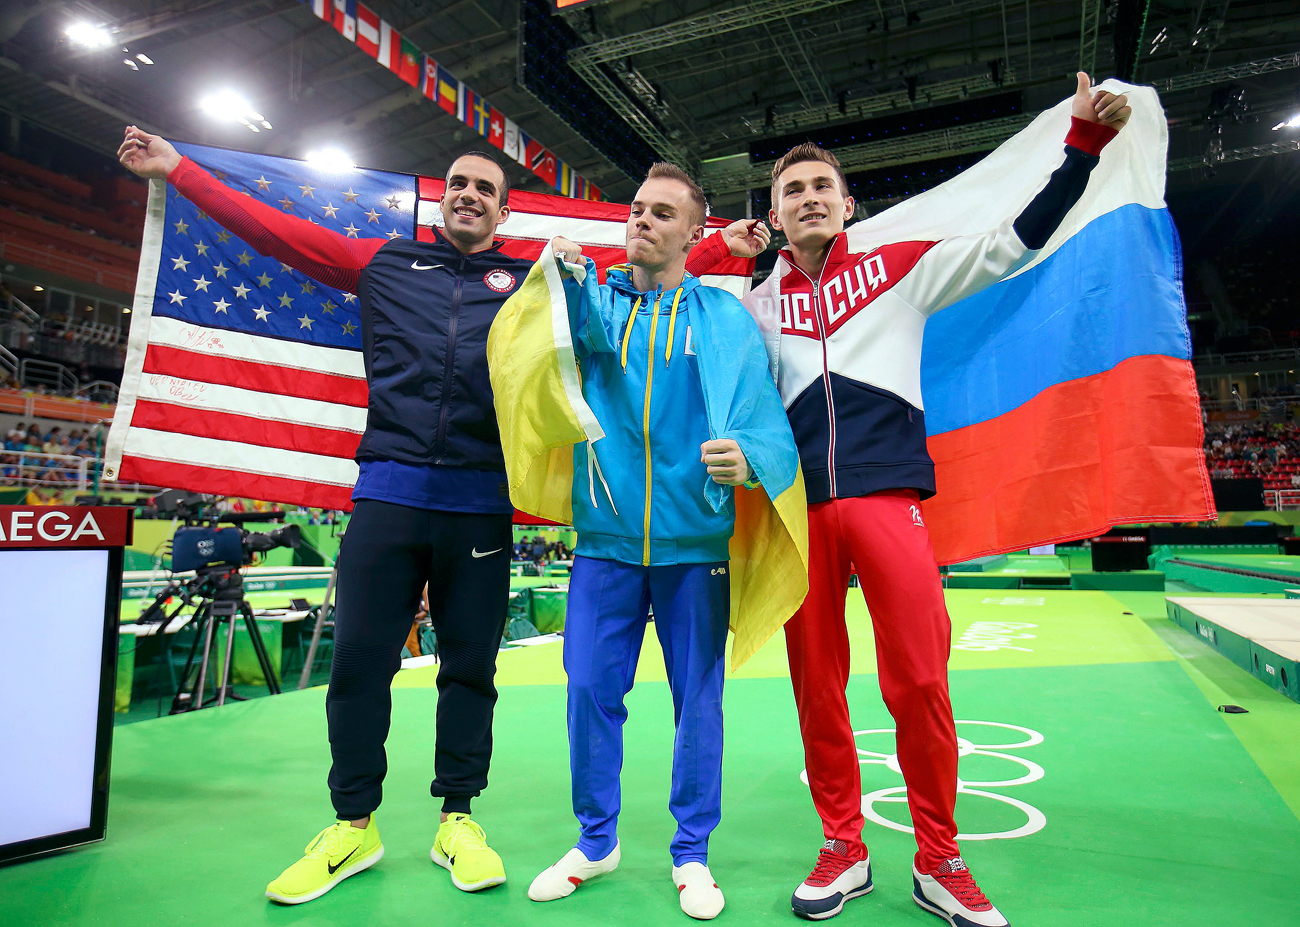 Rio Olympics - Artistic Gymnastics - Final - Men's Parallel Bars Final. First placed Oleg Verniaiev (UKR) of Ukraine, second placed Danell Leyva (USA) of USA, and third placed David Belyavskiy (RUS)